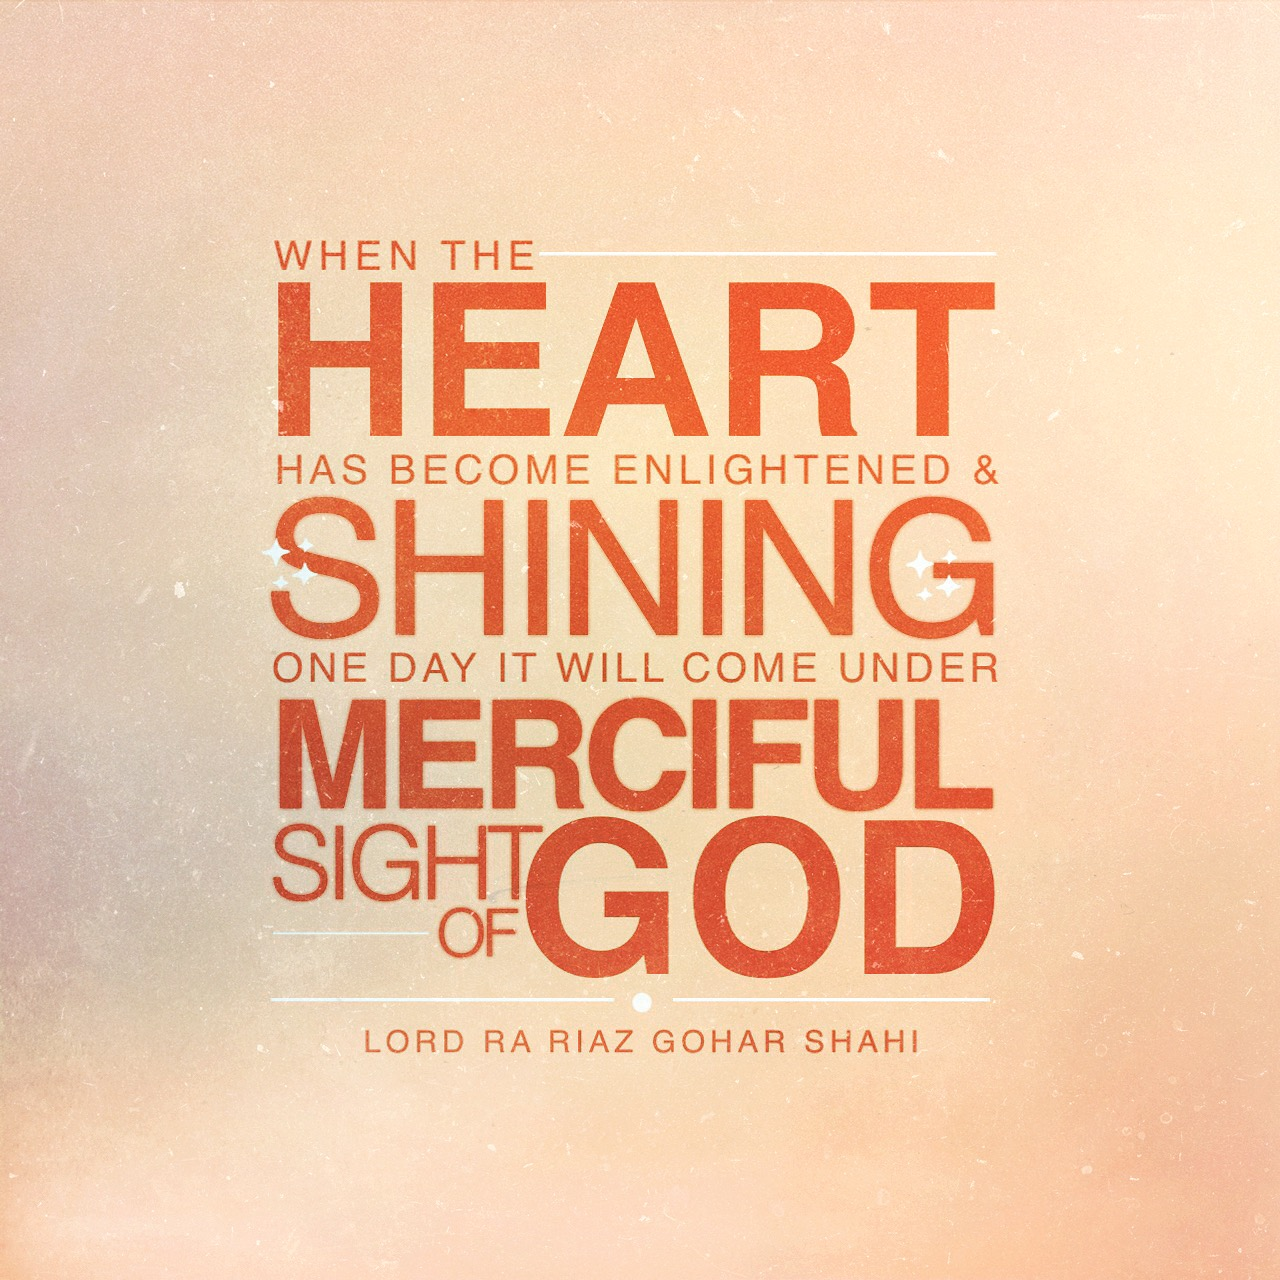 God's Mercy Quotes The Official Mfi® Blog June 2015